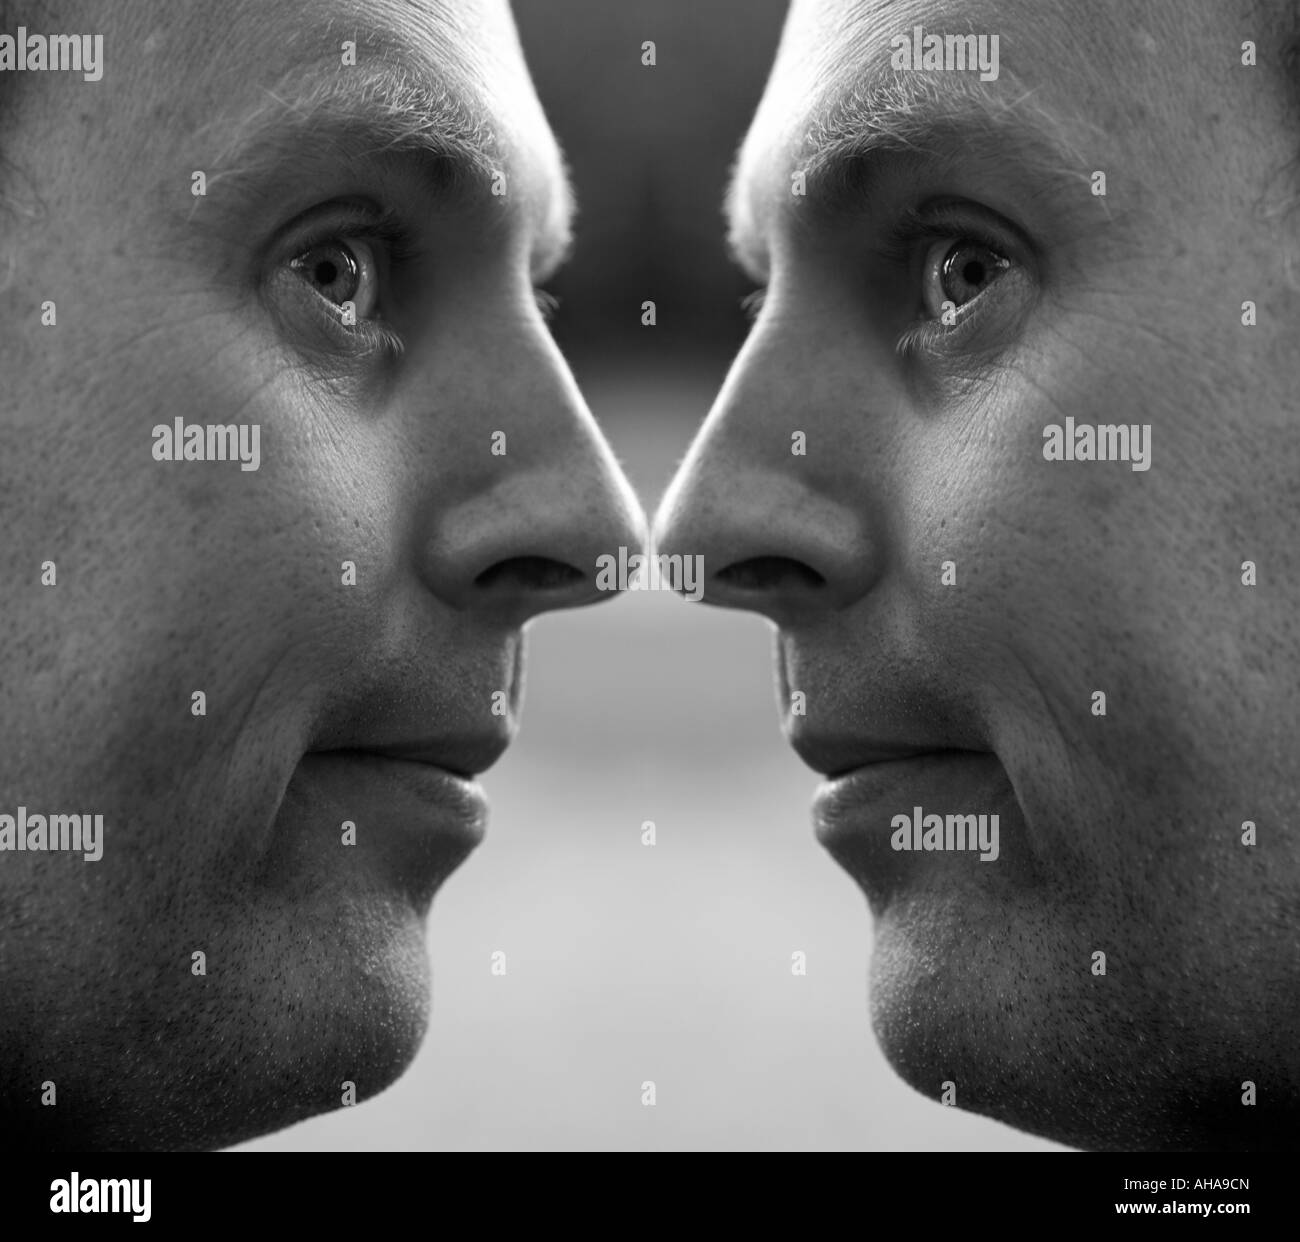 Black and white image of a mans face duplicated as a mirror image. - Stock Image